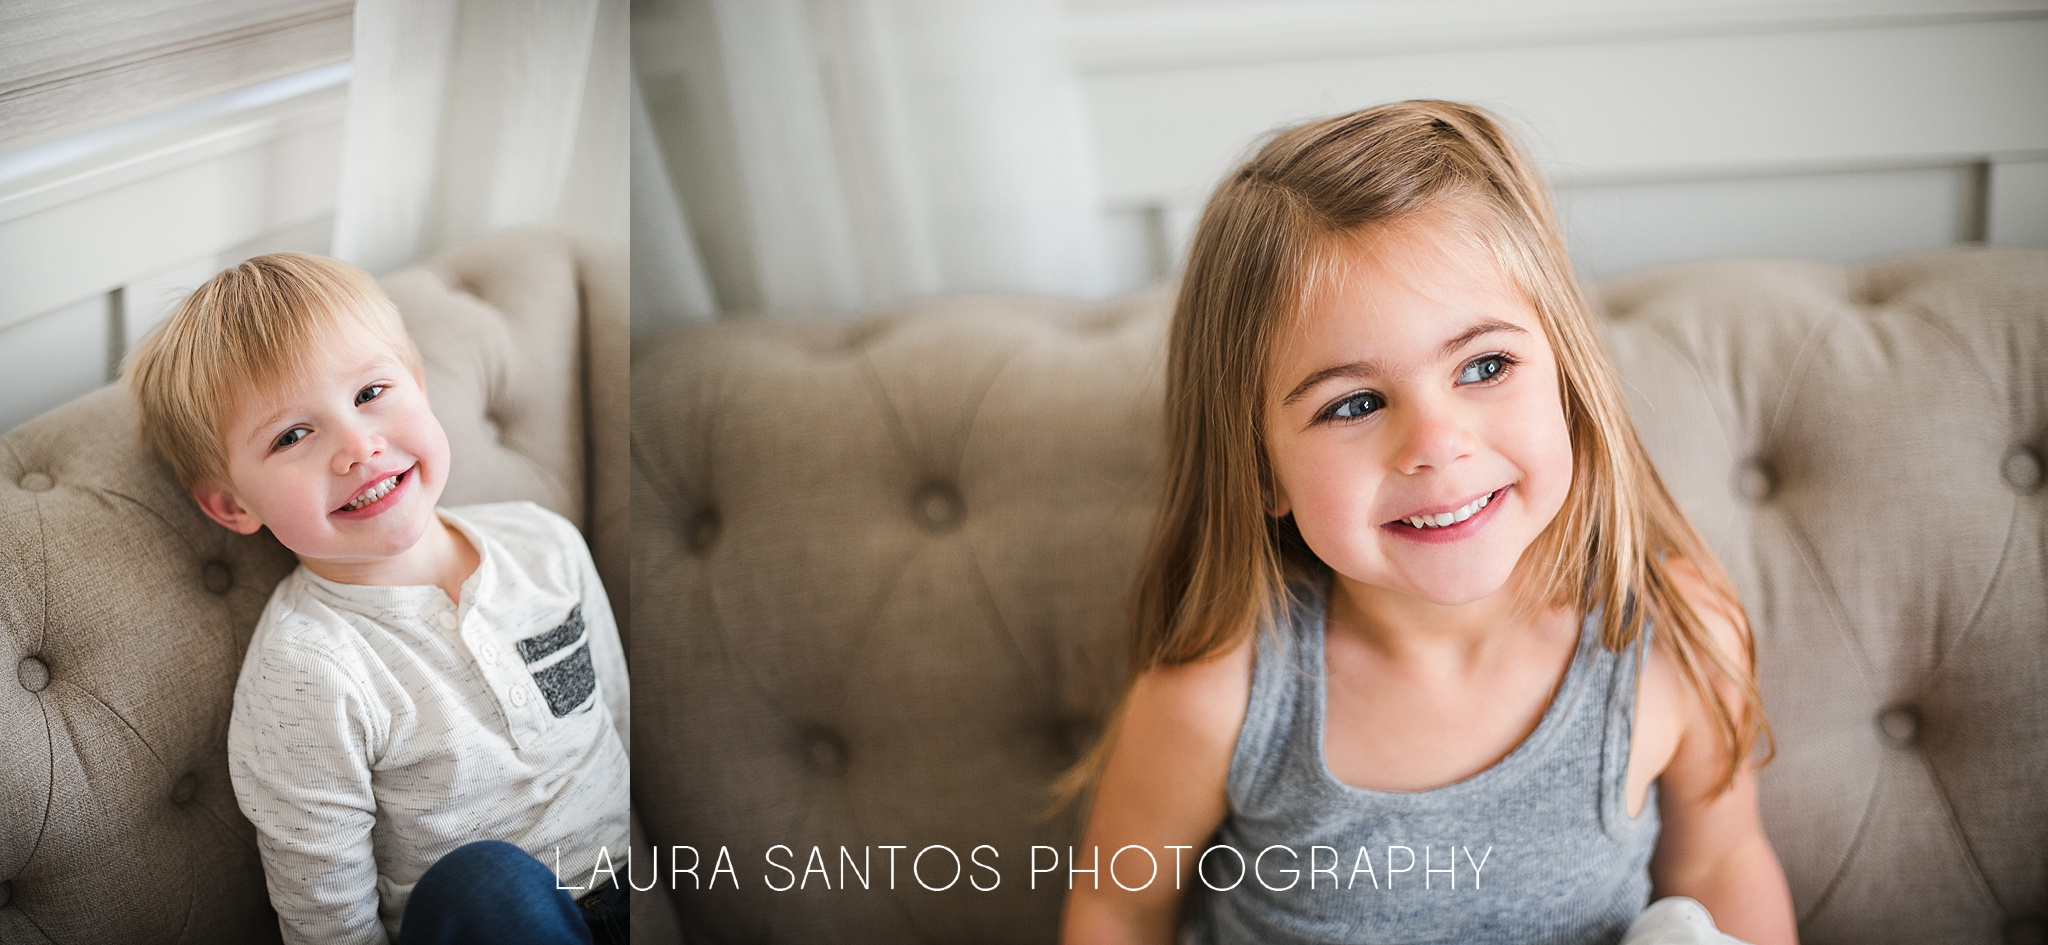 Laura Santos Photography Portland Oregon Family Photographer_0773.jpg